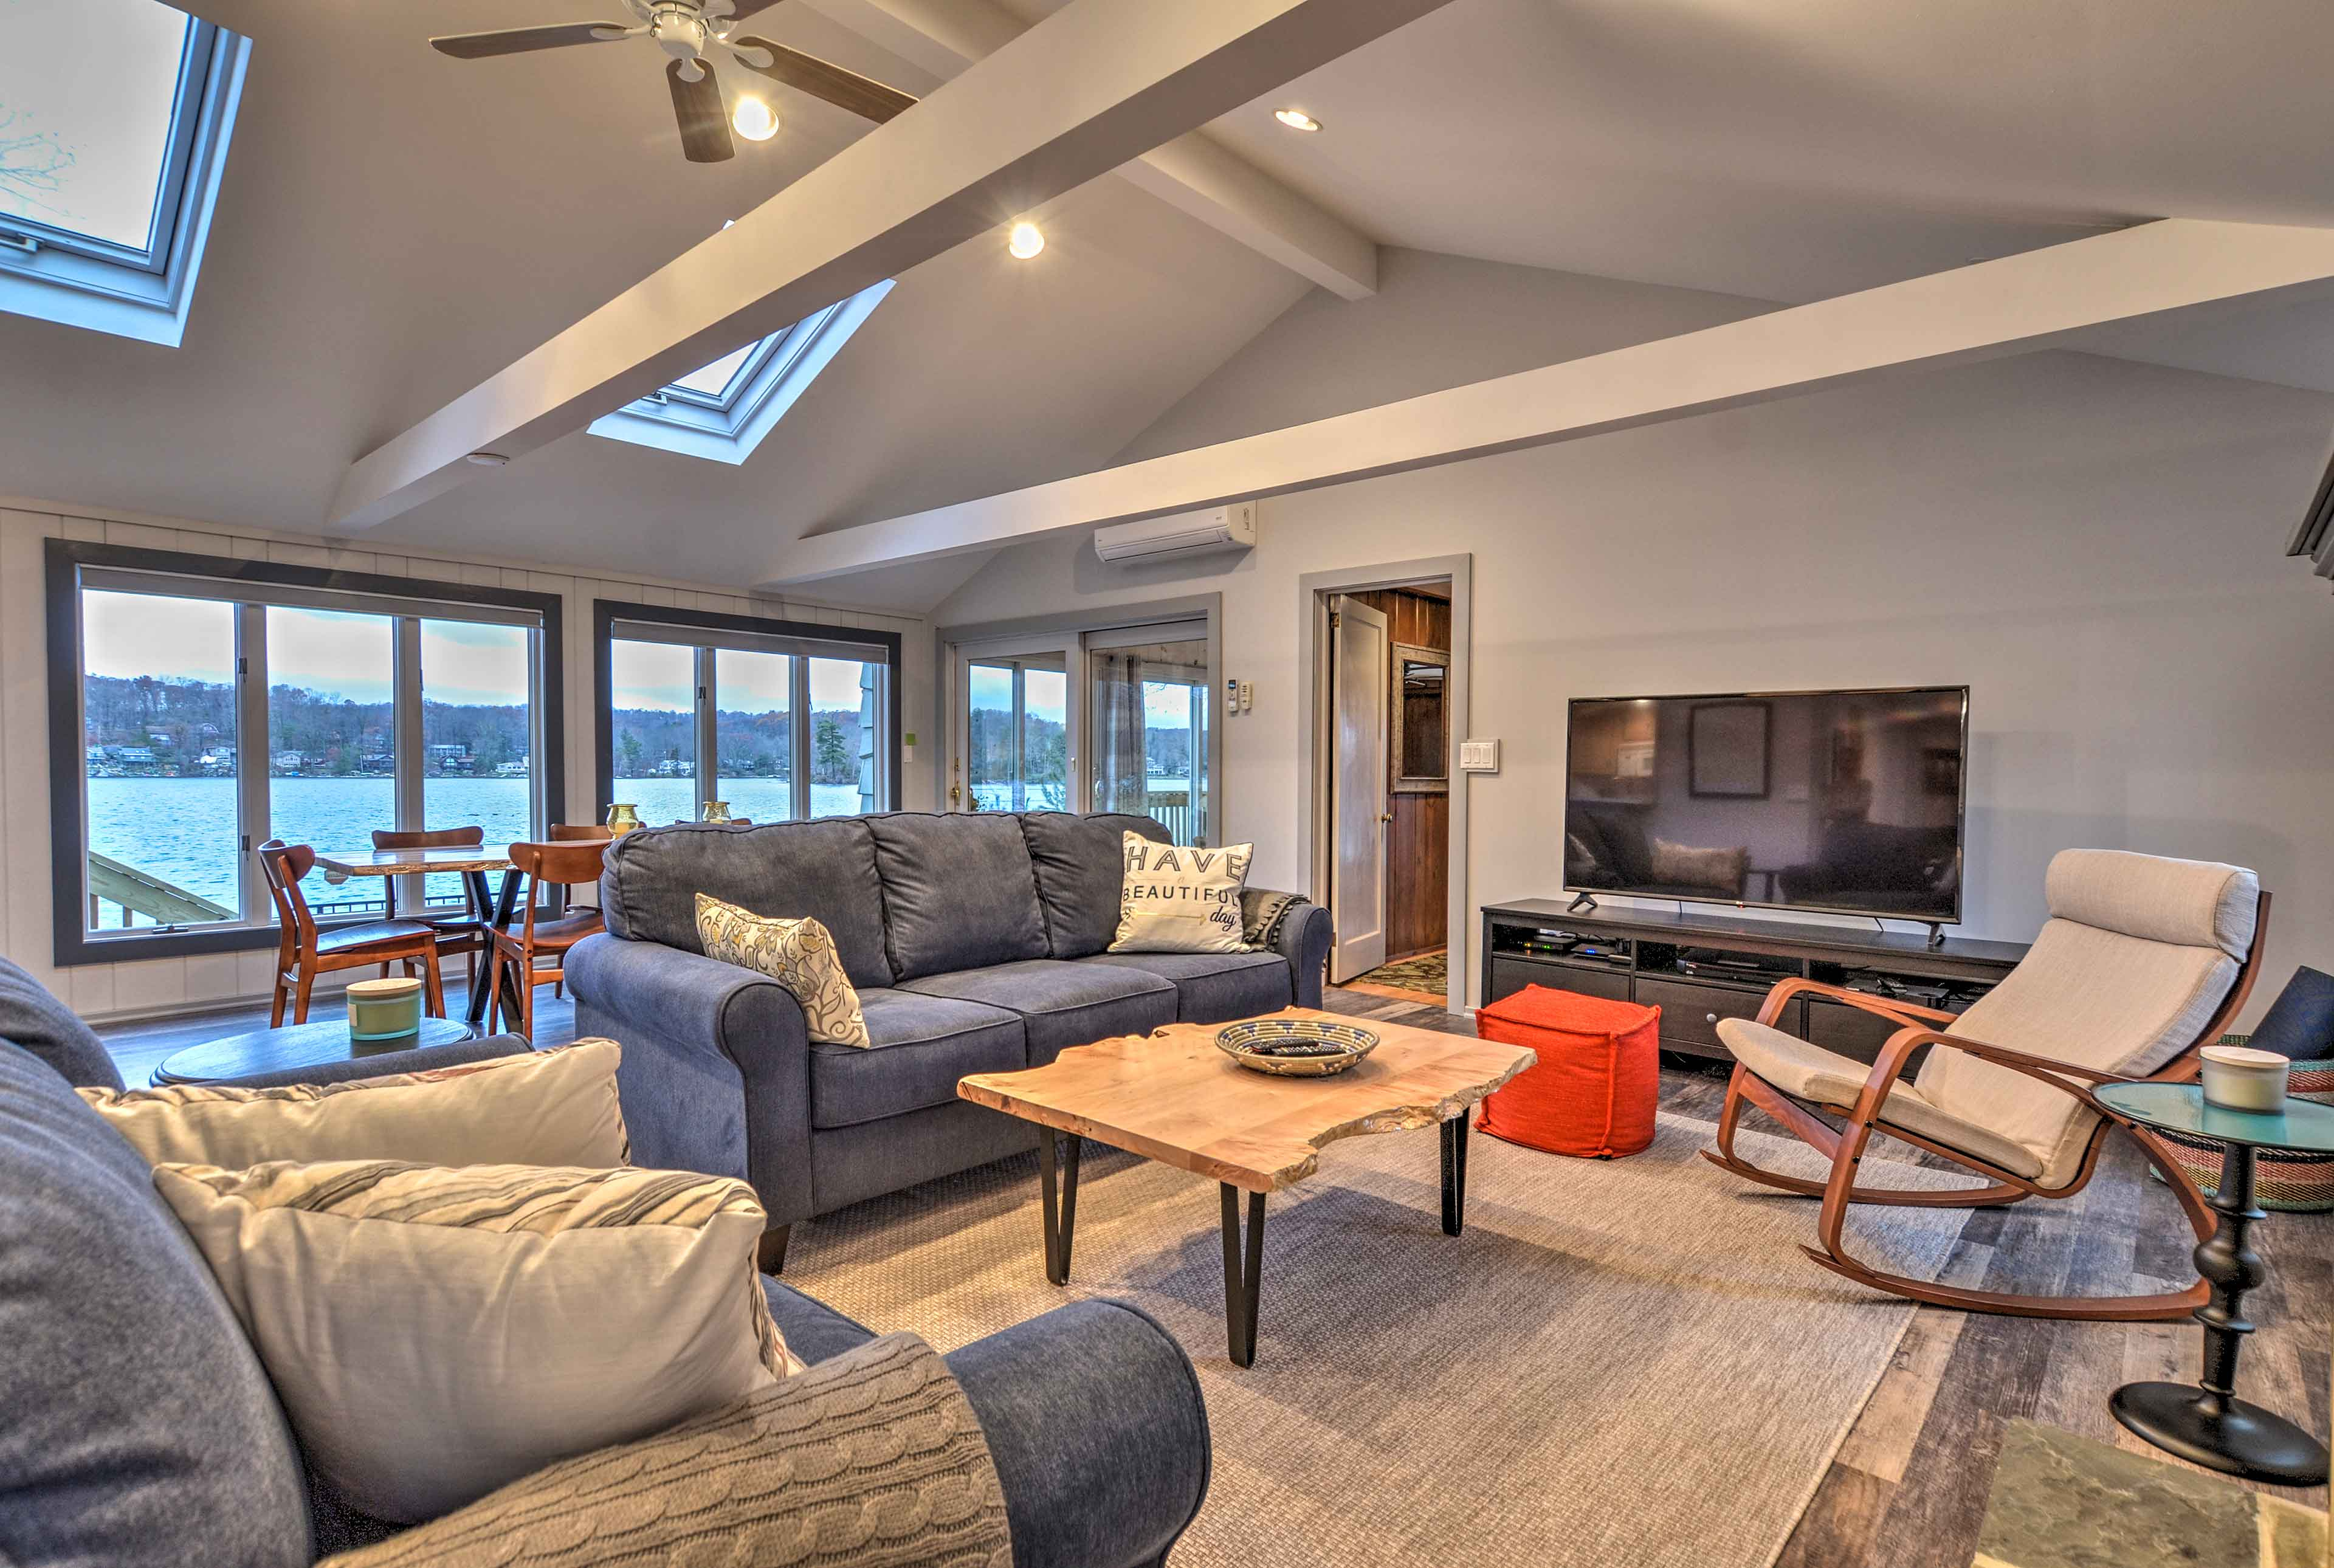 You'll have 4 bedrooms, 2.5 baths and panoramic views of the lake!